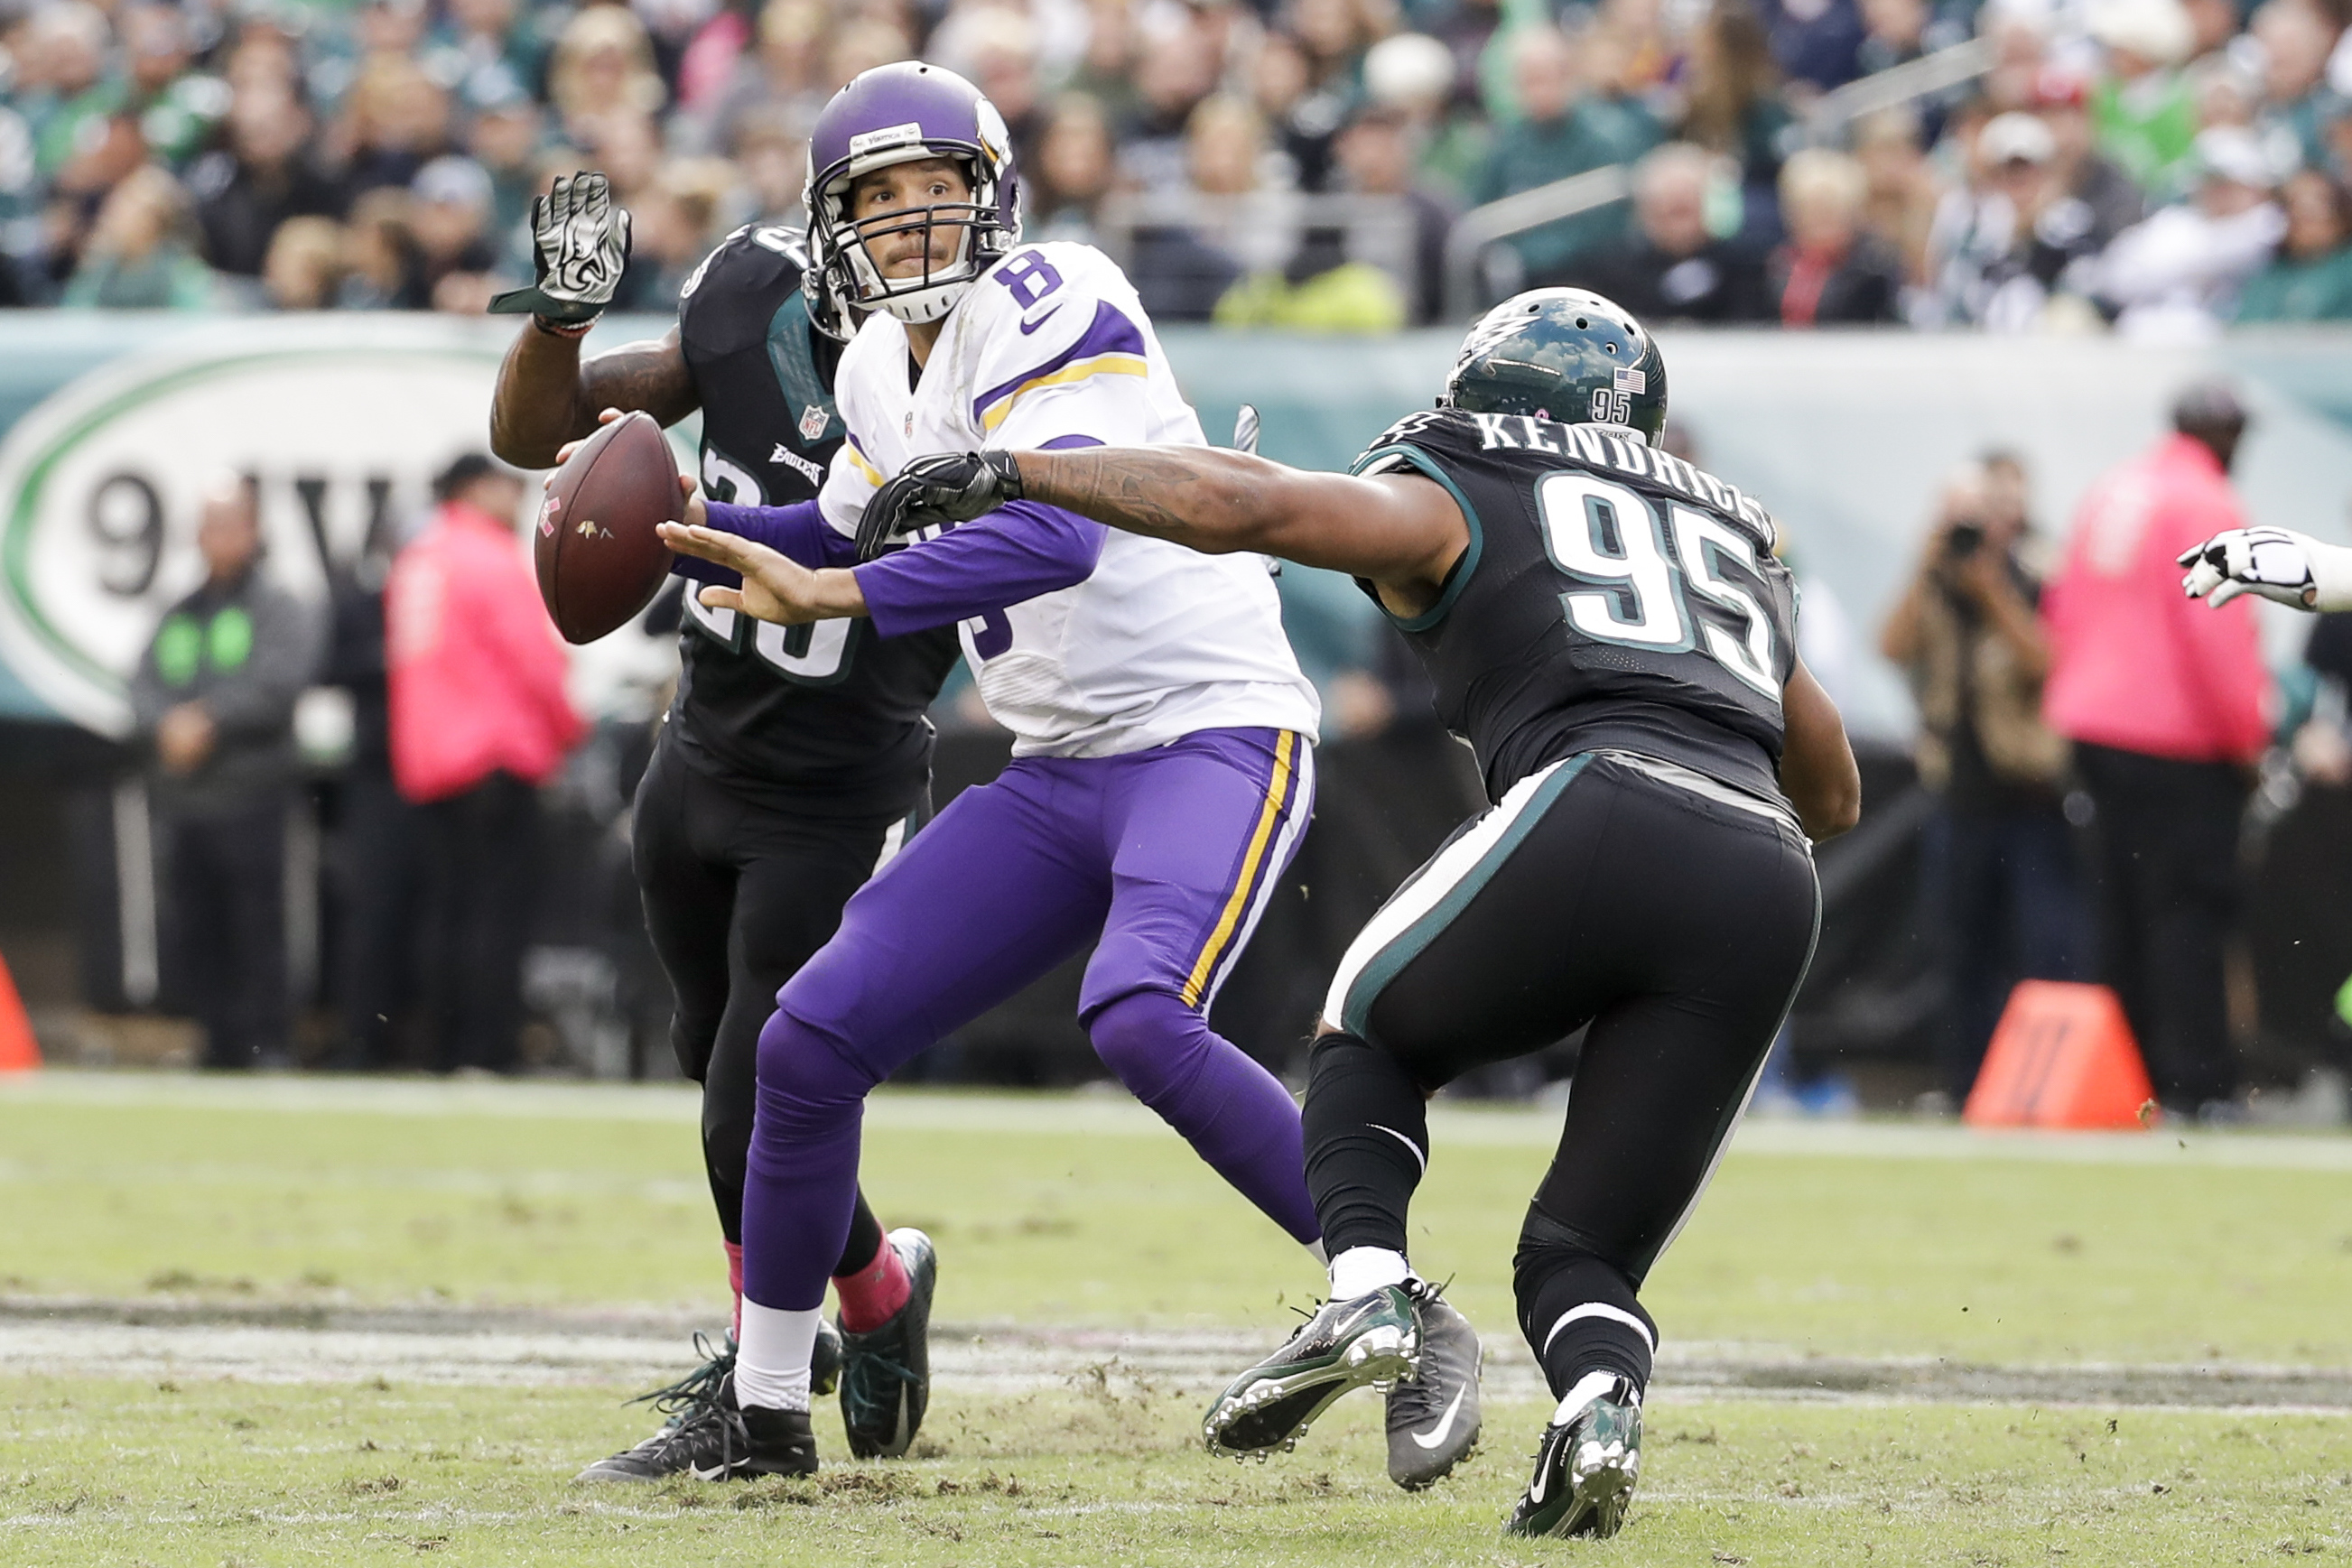 FILE - In this Oct. 23, 2016, file photo, Minnesota Vikings quarterback Sam Bradford (8) is shown under pressure by Philadelphia Eagles free safety Rodney McLeod (23) and outside linebacker Mychal Kendricks (95) during an NFL football game in Philadelphia